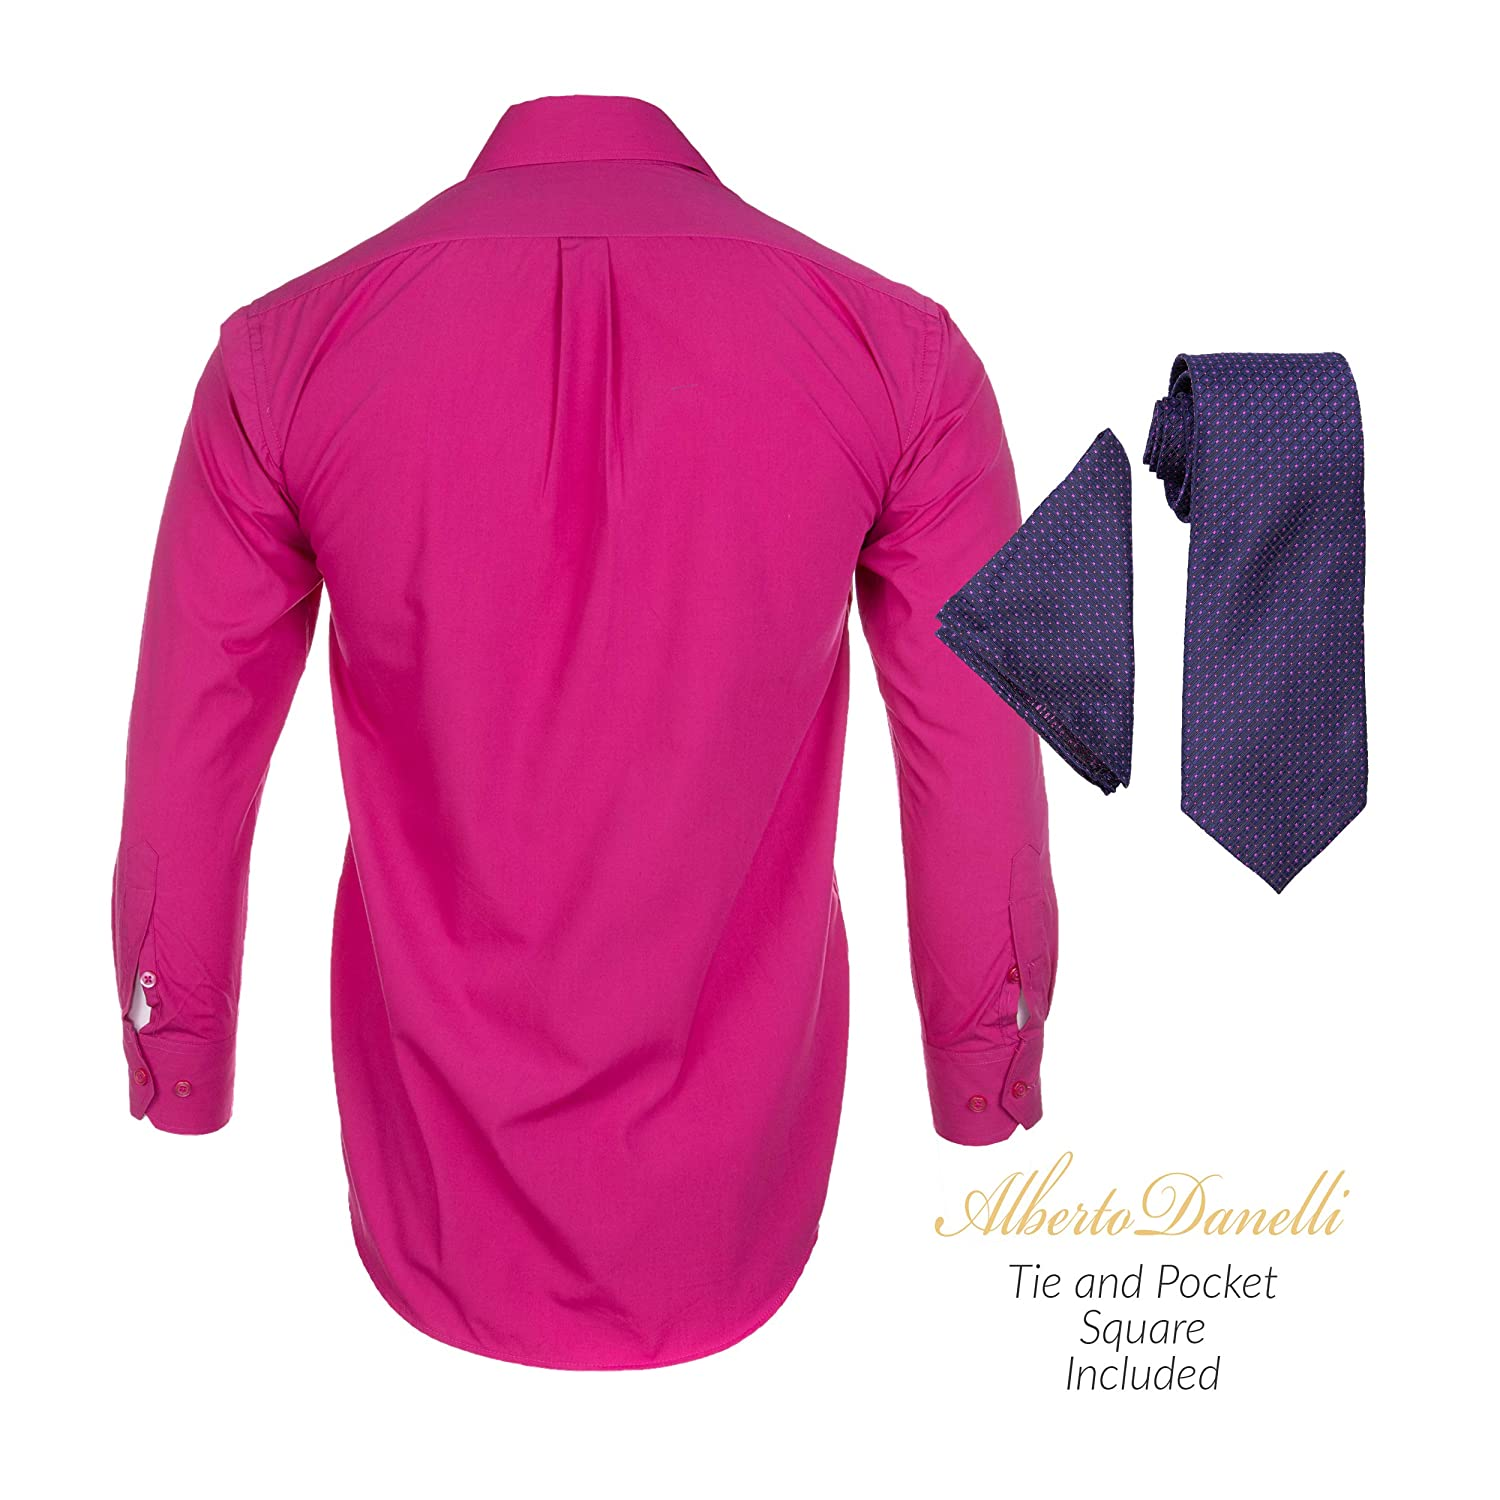 Alberto Danelli Mens Long Sleeve Dress Shirt with Matching Tie and Handkerchie Set